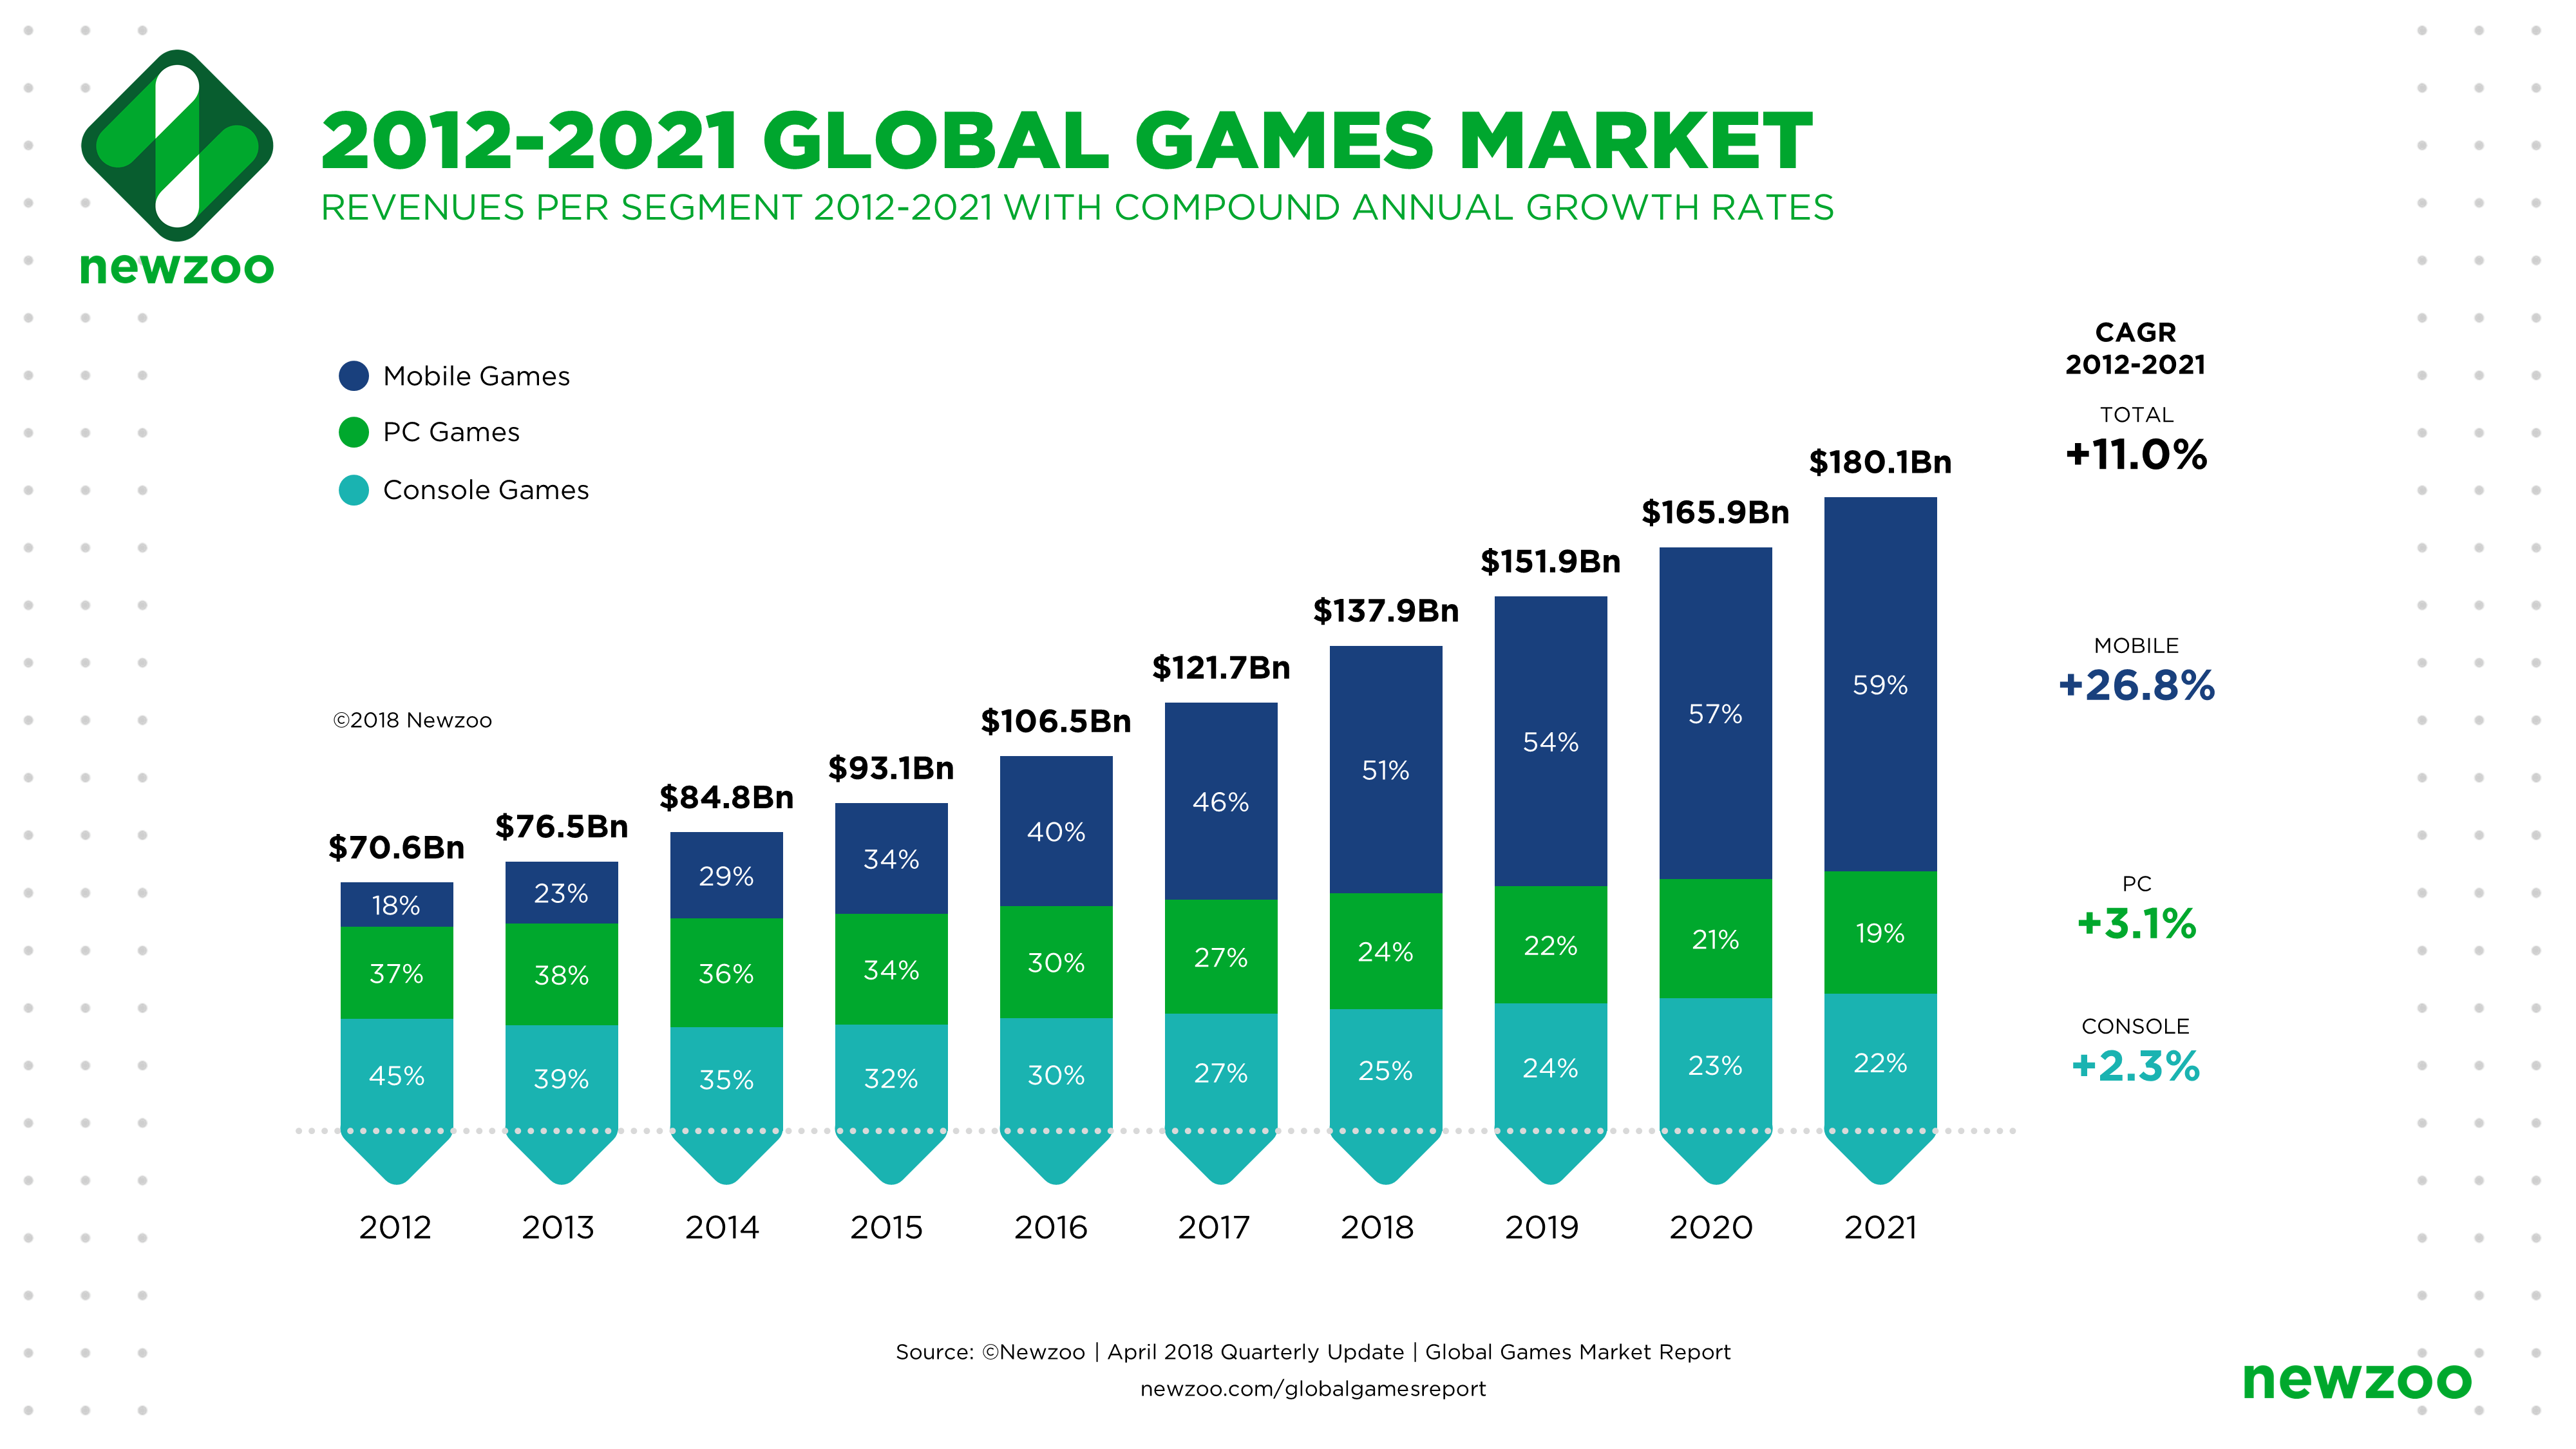 Growth of the game market - segments of different platforms